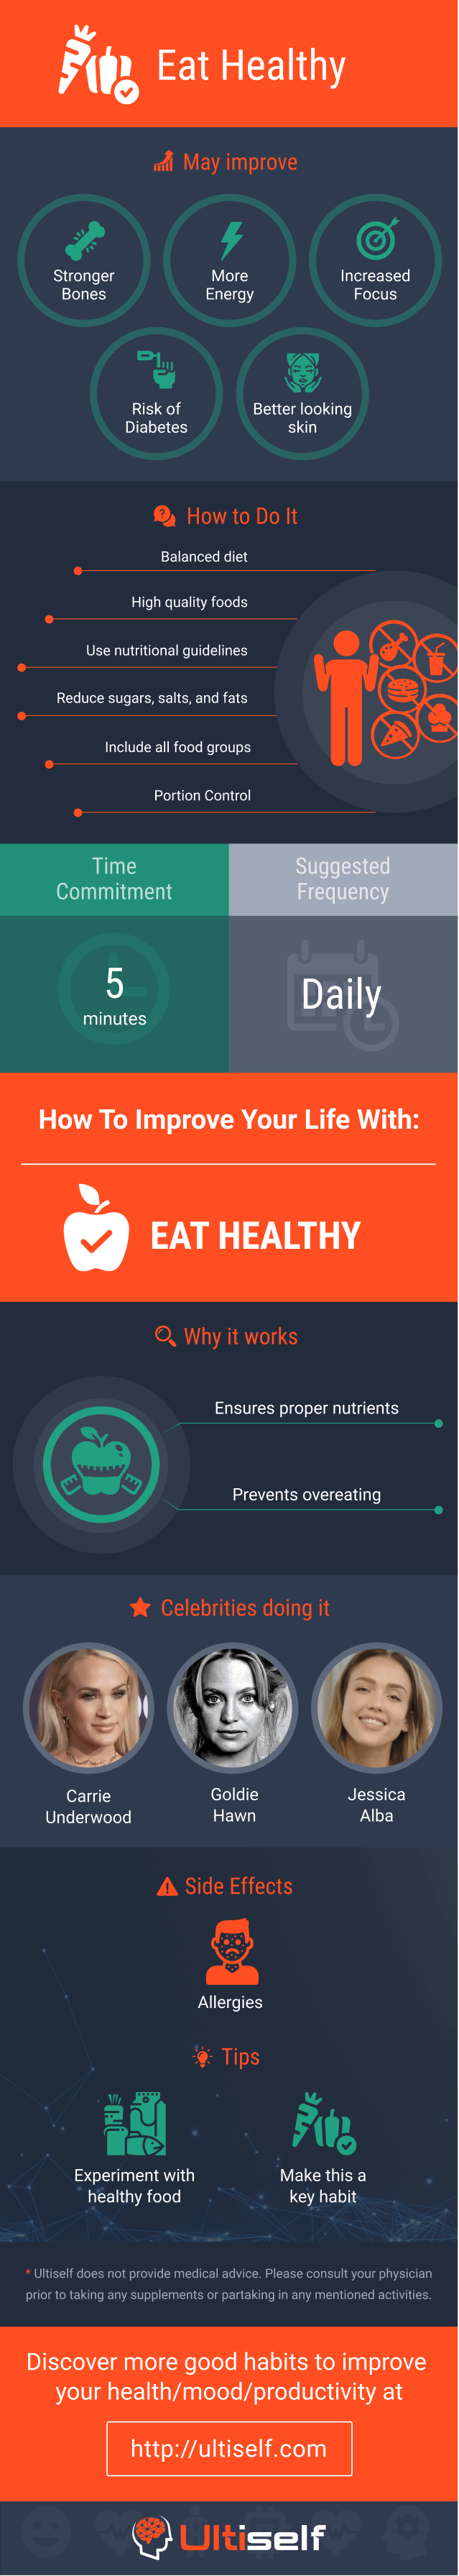 Eat Healthy infographic